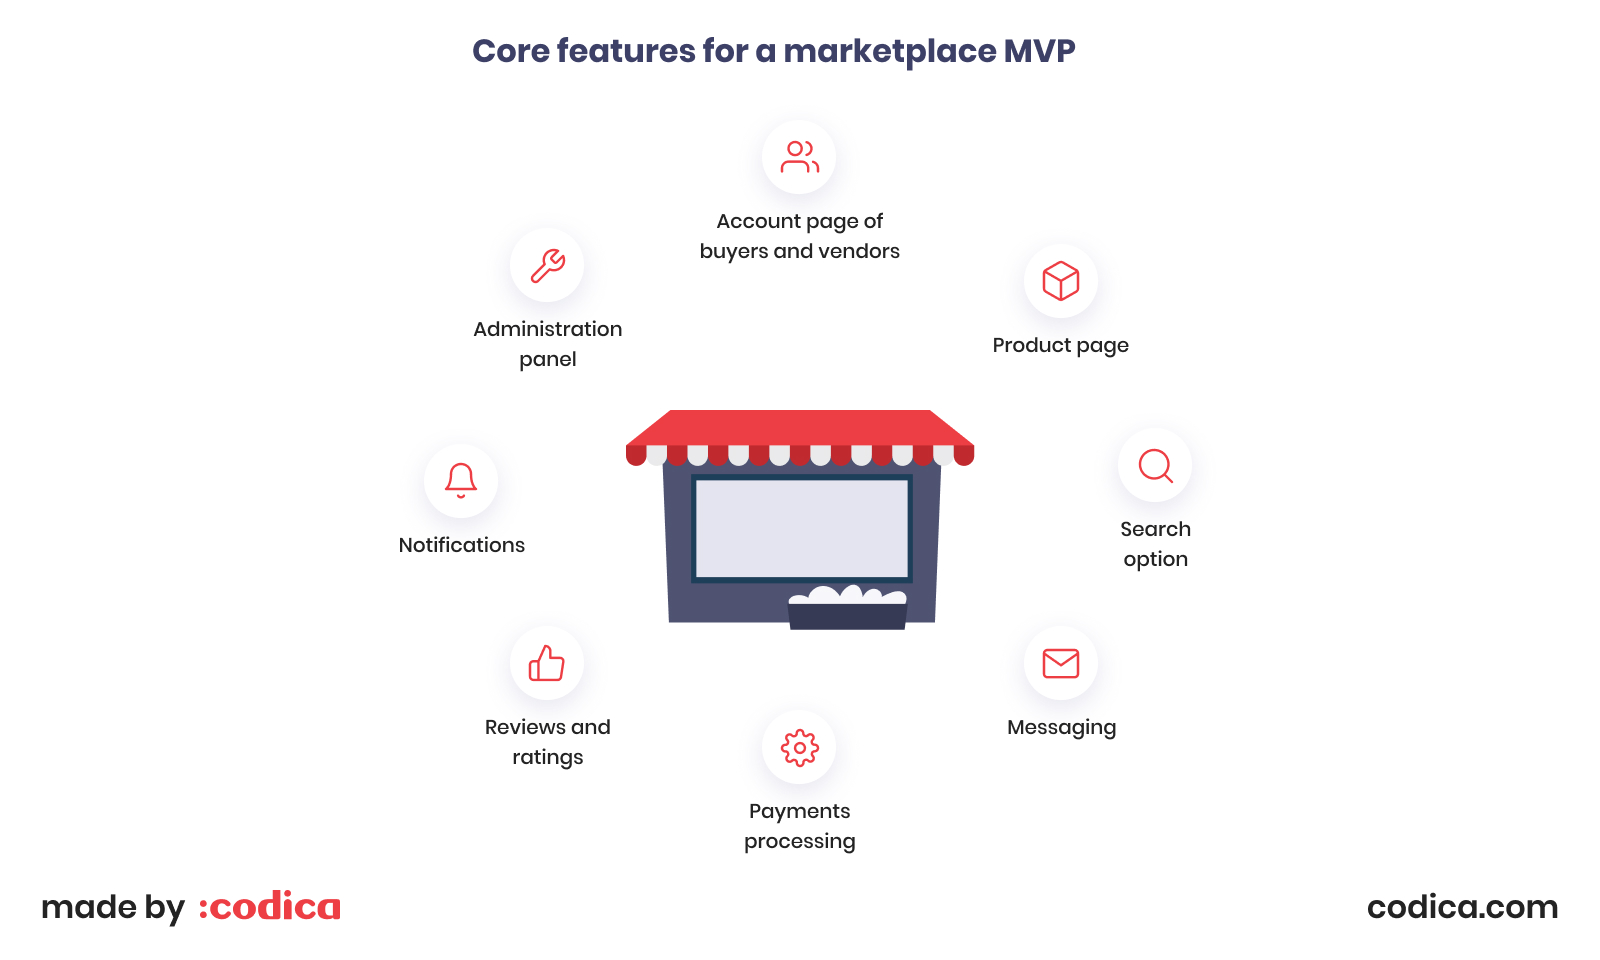 Core features for a marketplace MVP